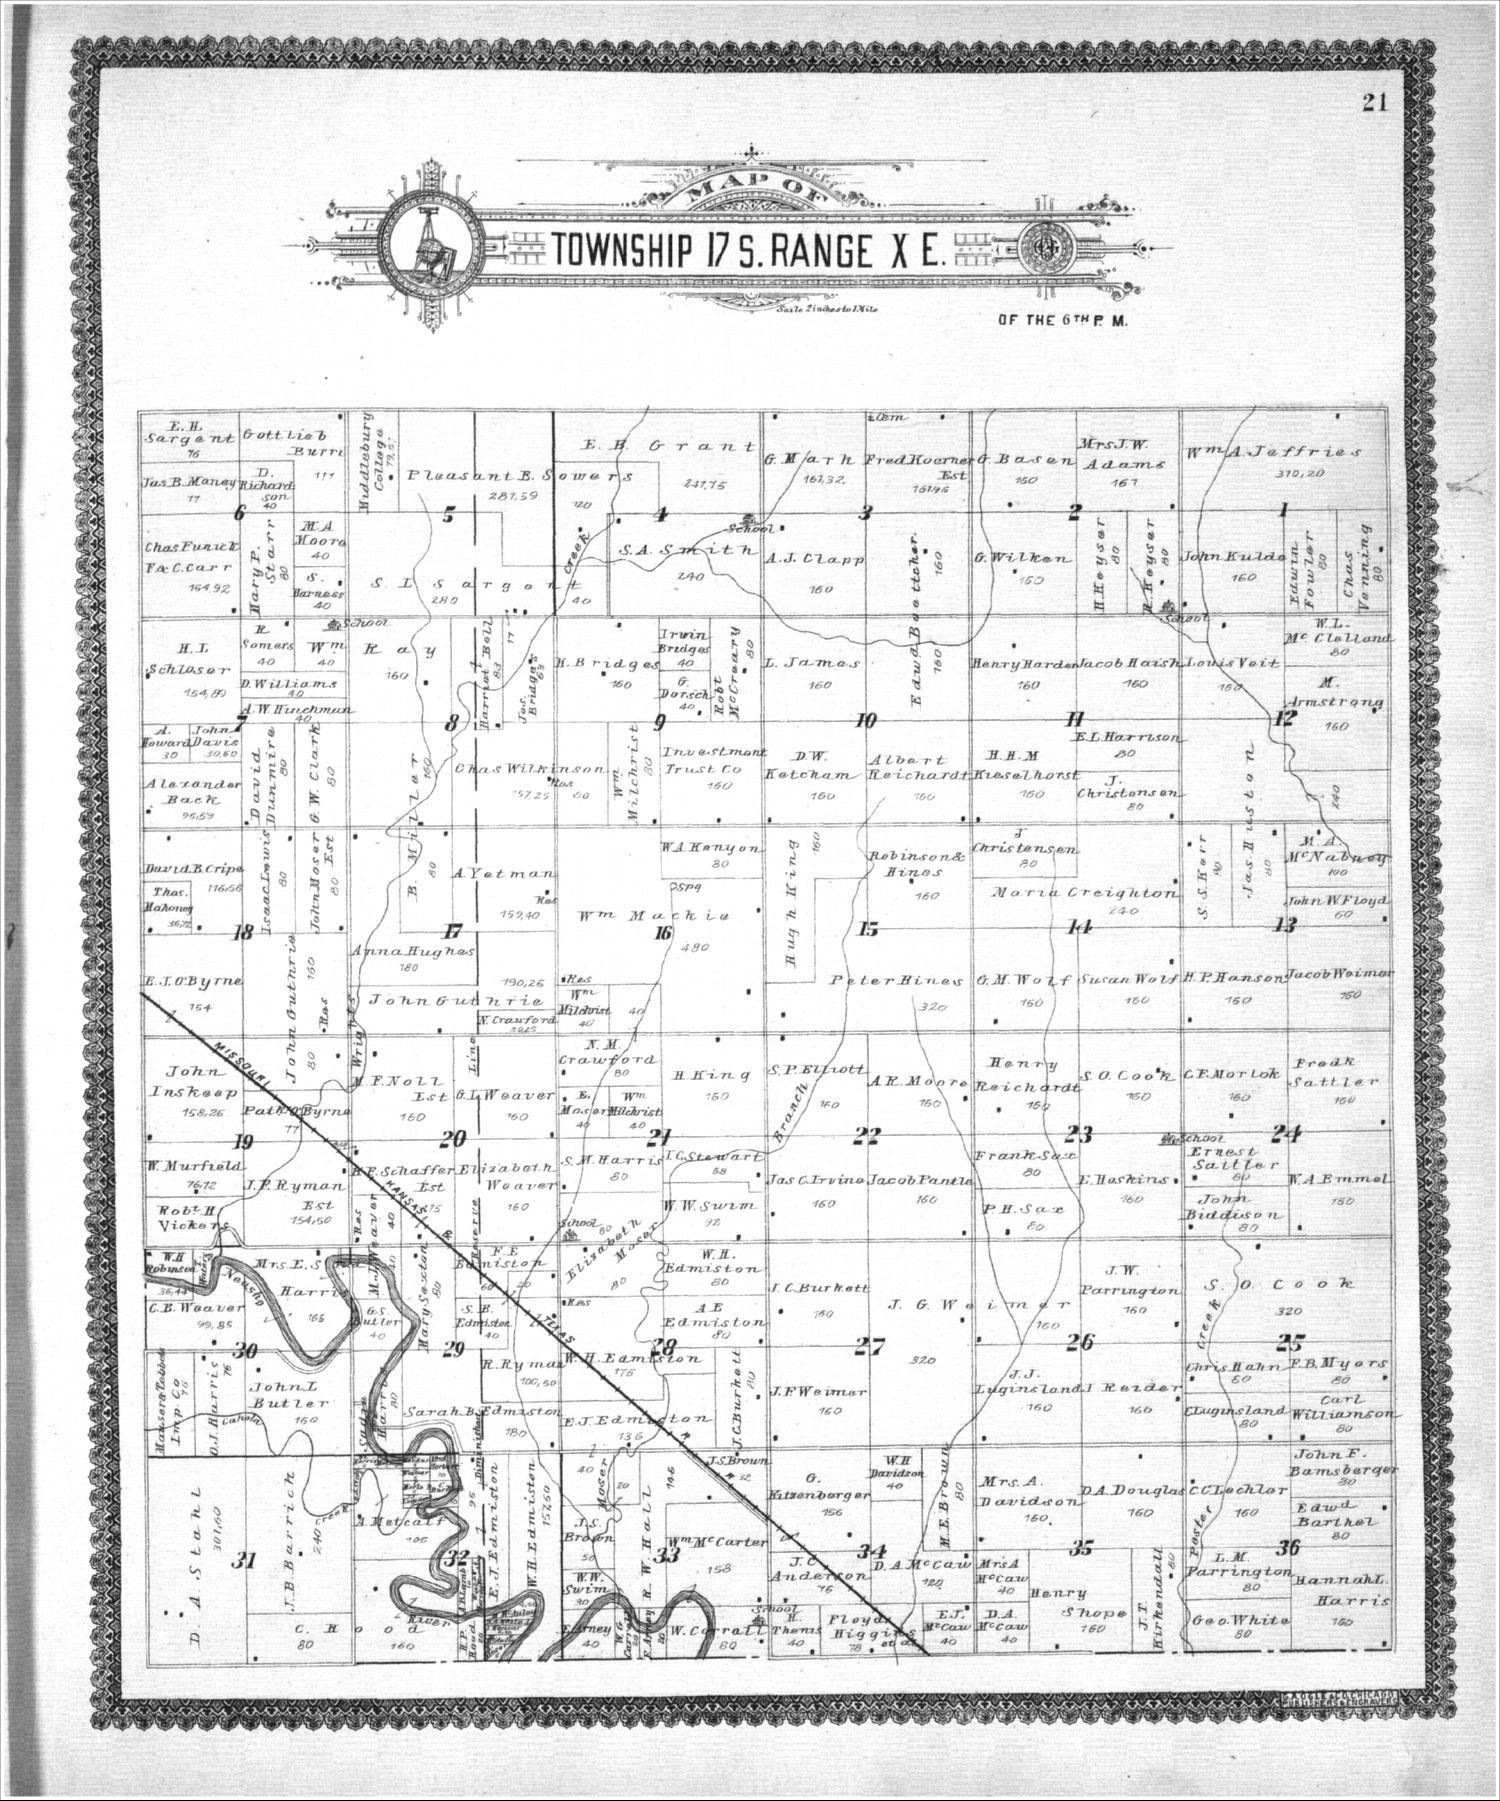 Standard atlas, Lyon County, Kansas - 21